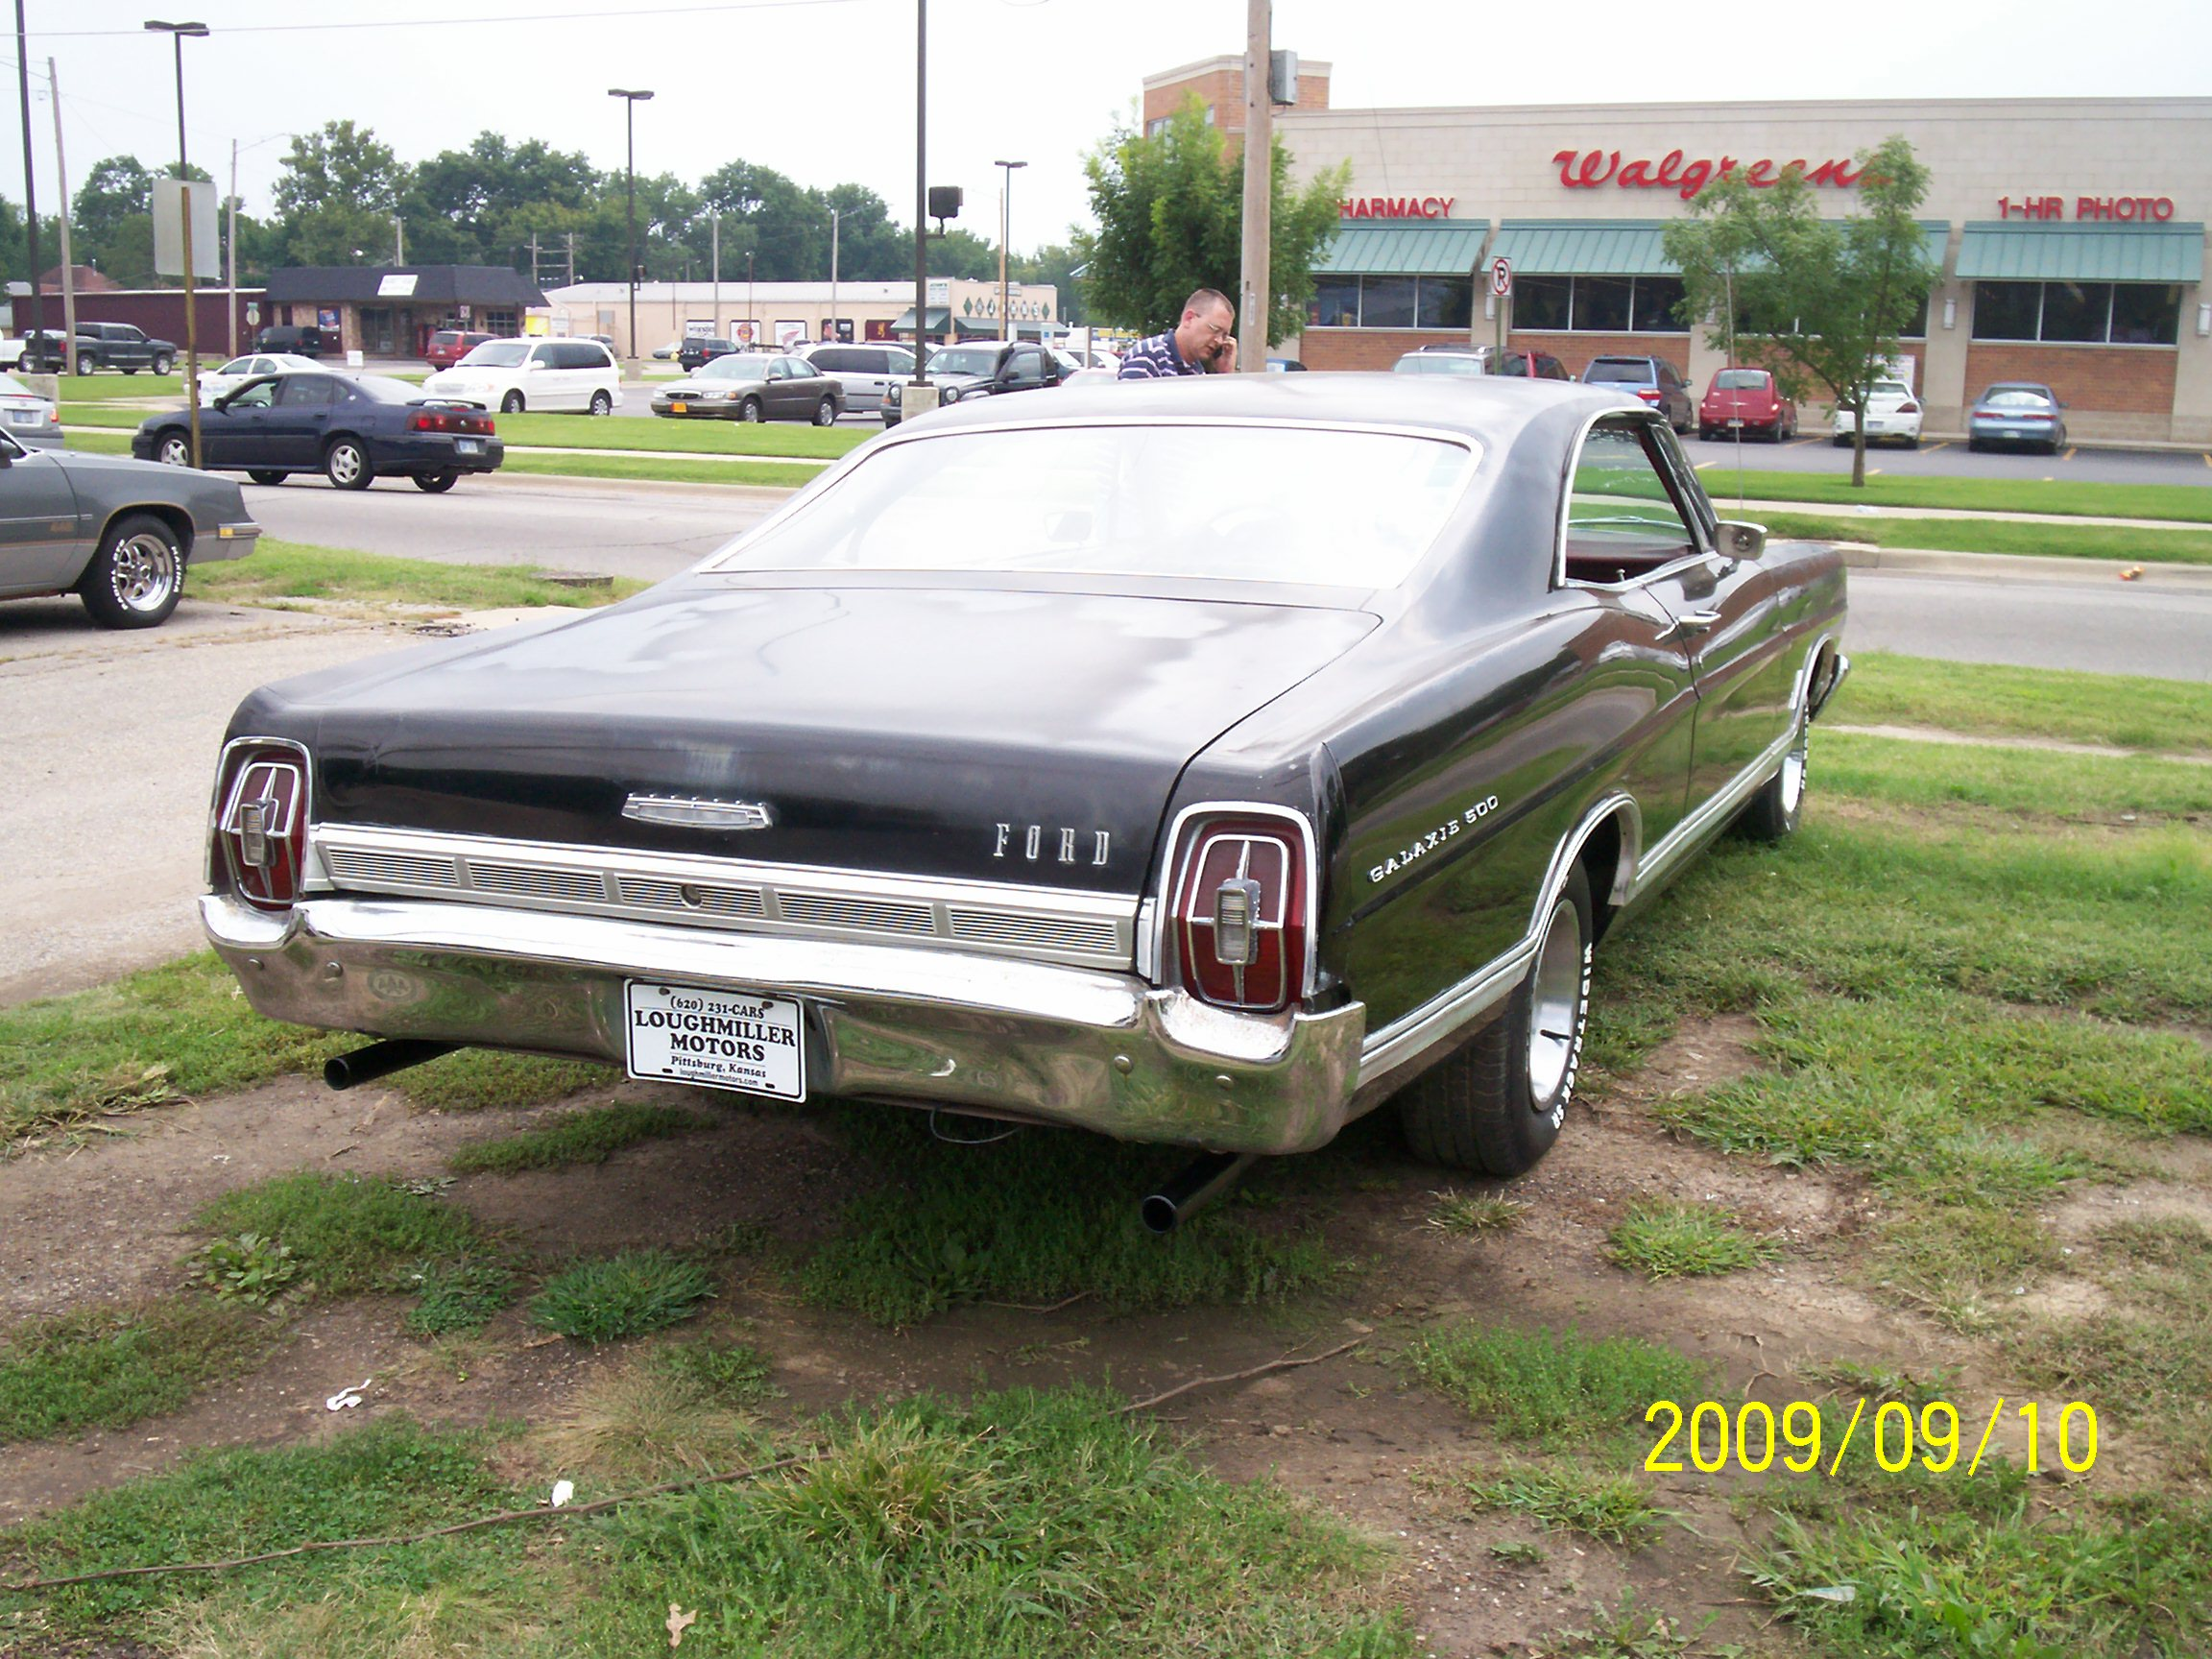 67galaxie46g has small 2 area area in each corner of deepest section of trunk both bumpers were good but i messed up the back one towing it to pittsburg publicscrutiny Choice Image